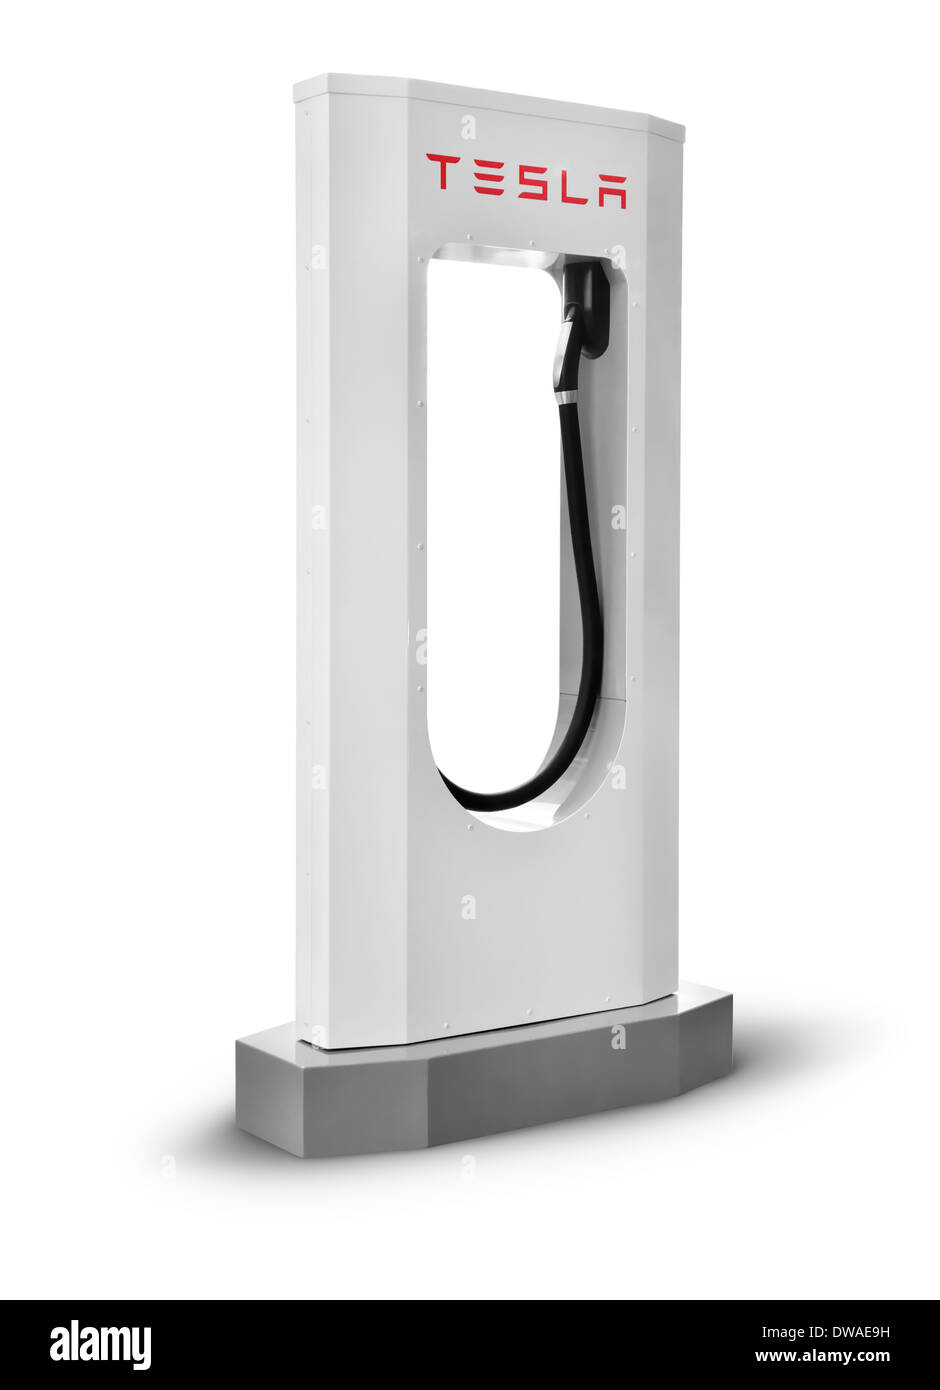 Tesla Supercharger Charging Station Isolated On White